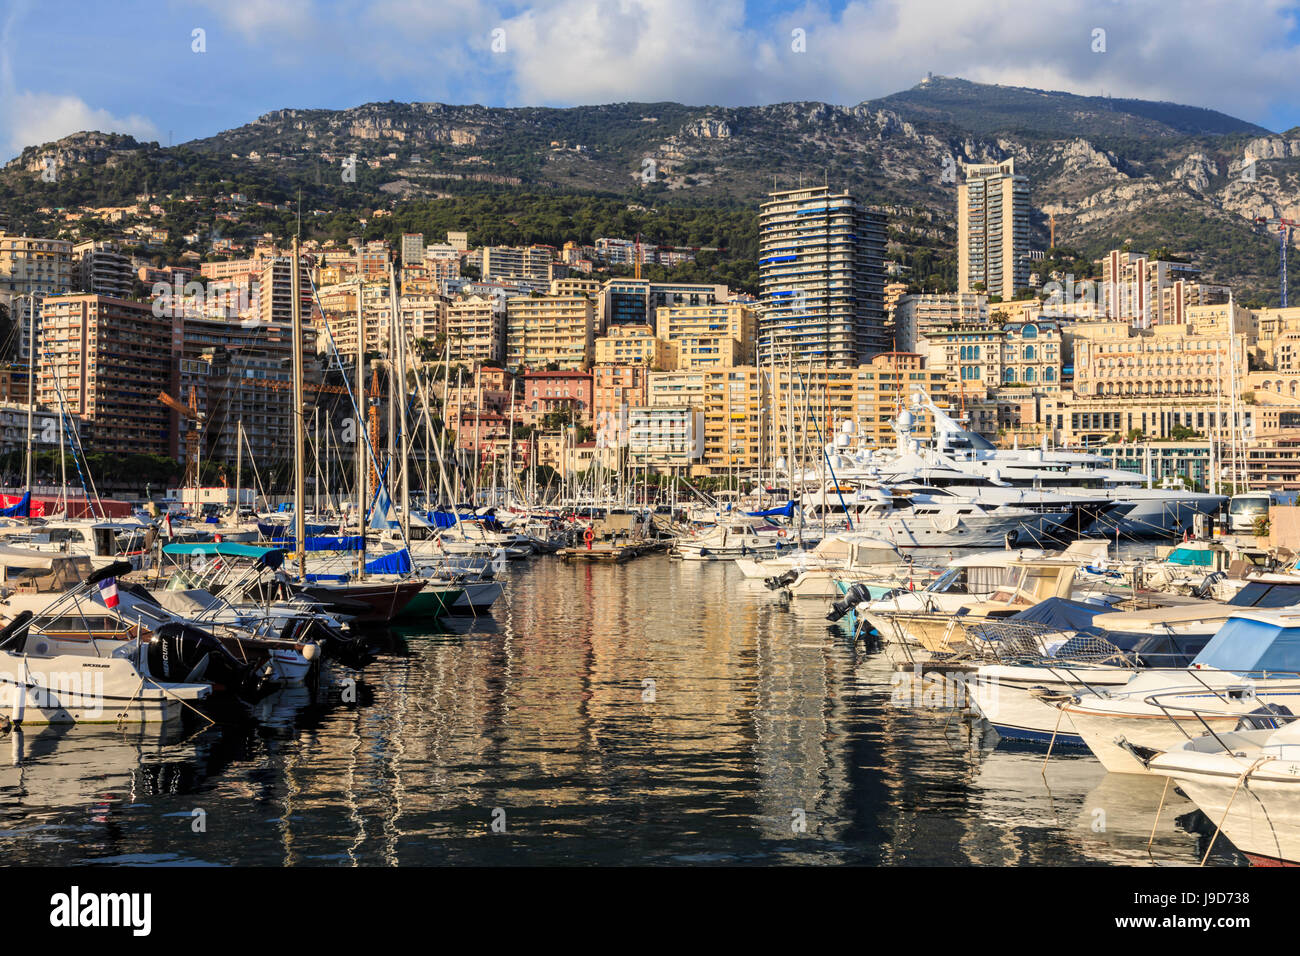 Vivid hues of the glamorous harbour of Monaco (Port Hercules) with many yachts and reflections, Monte Carlo, Monaco, - Stock Image